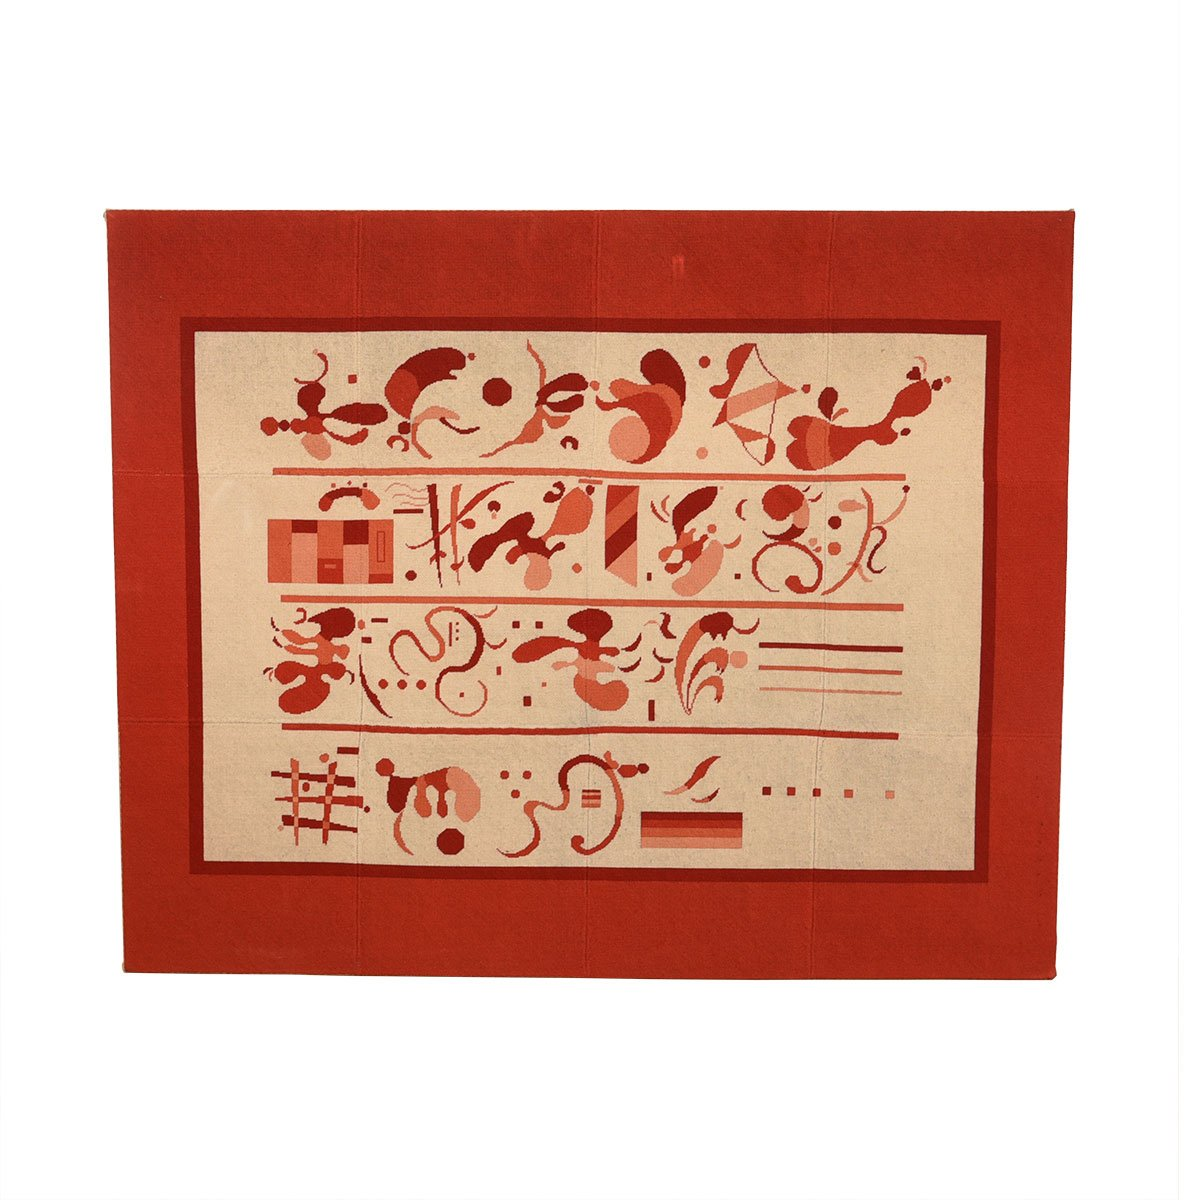 Museum-quality Needlepoint Art Piece Featuring Modernist Hieroglyphs